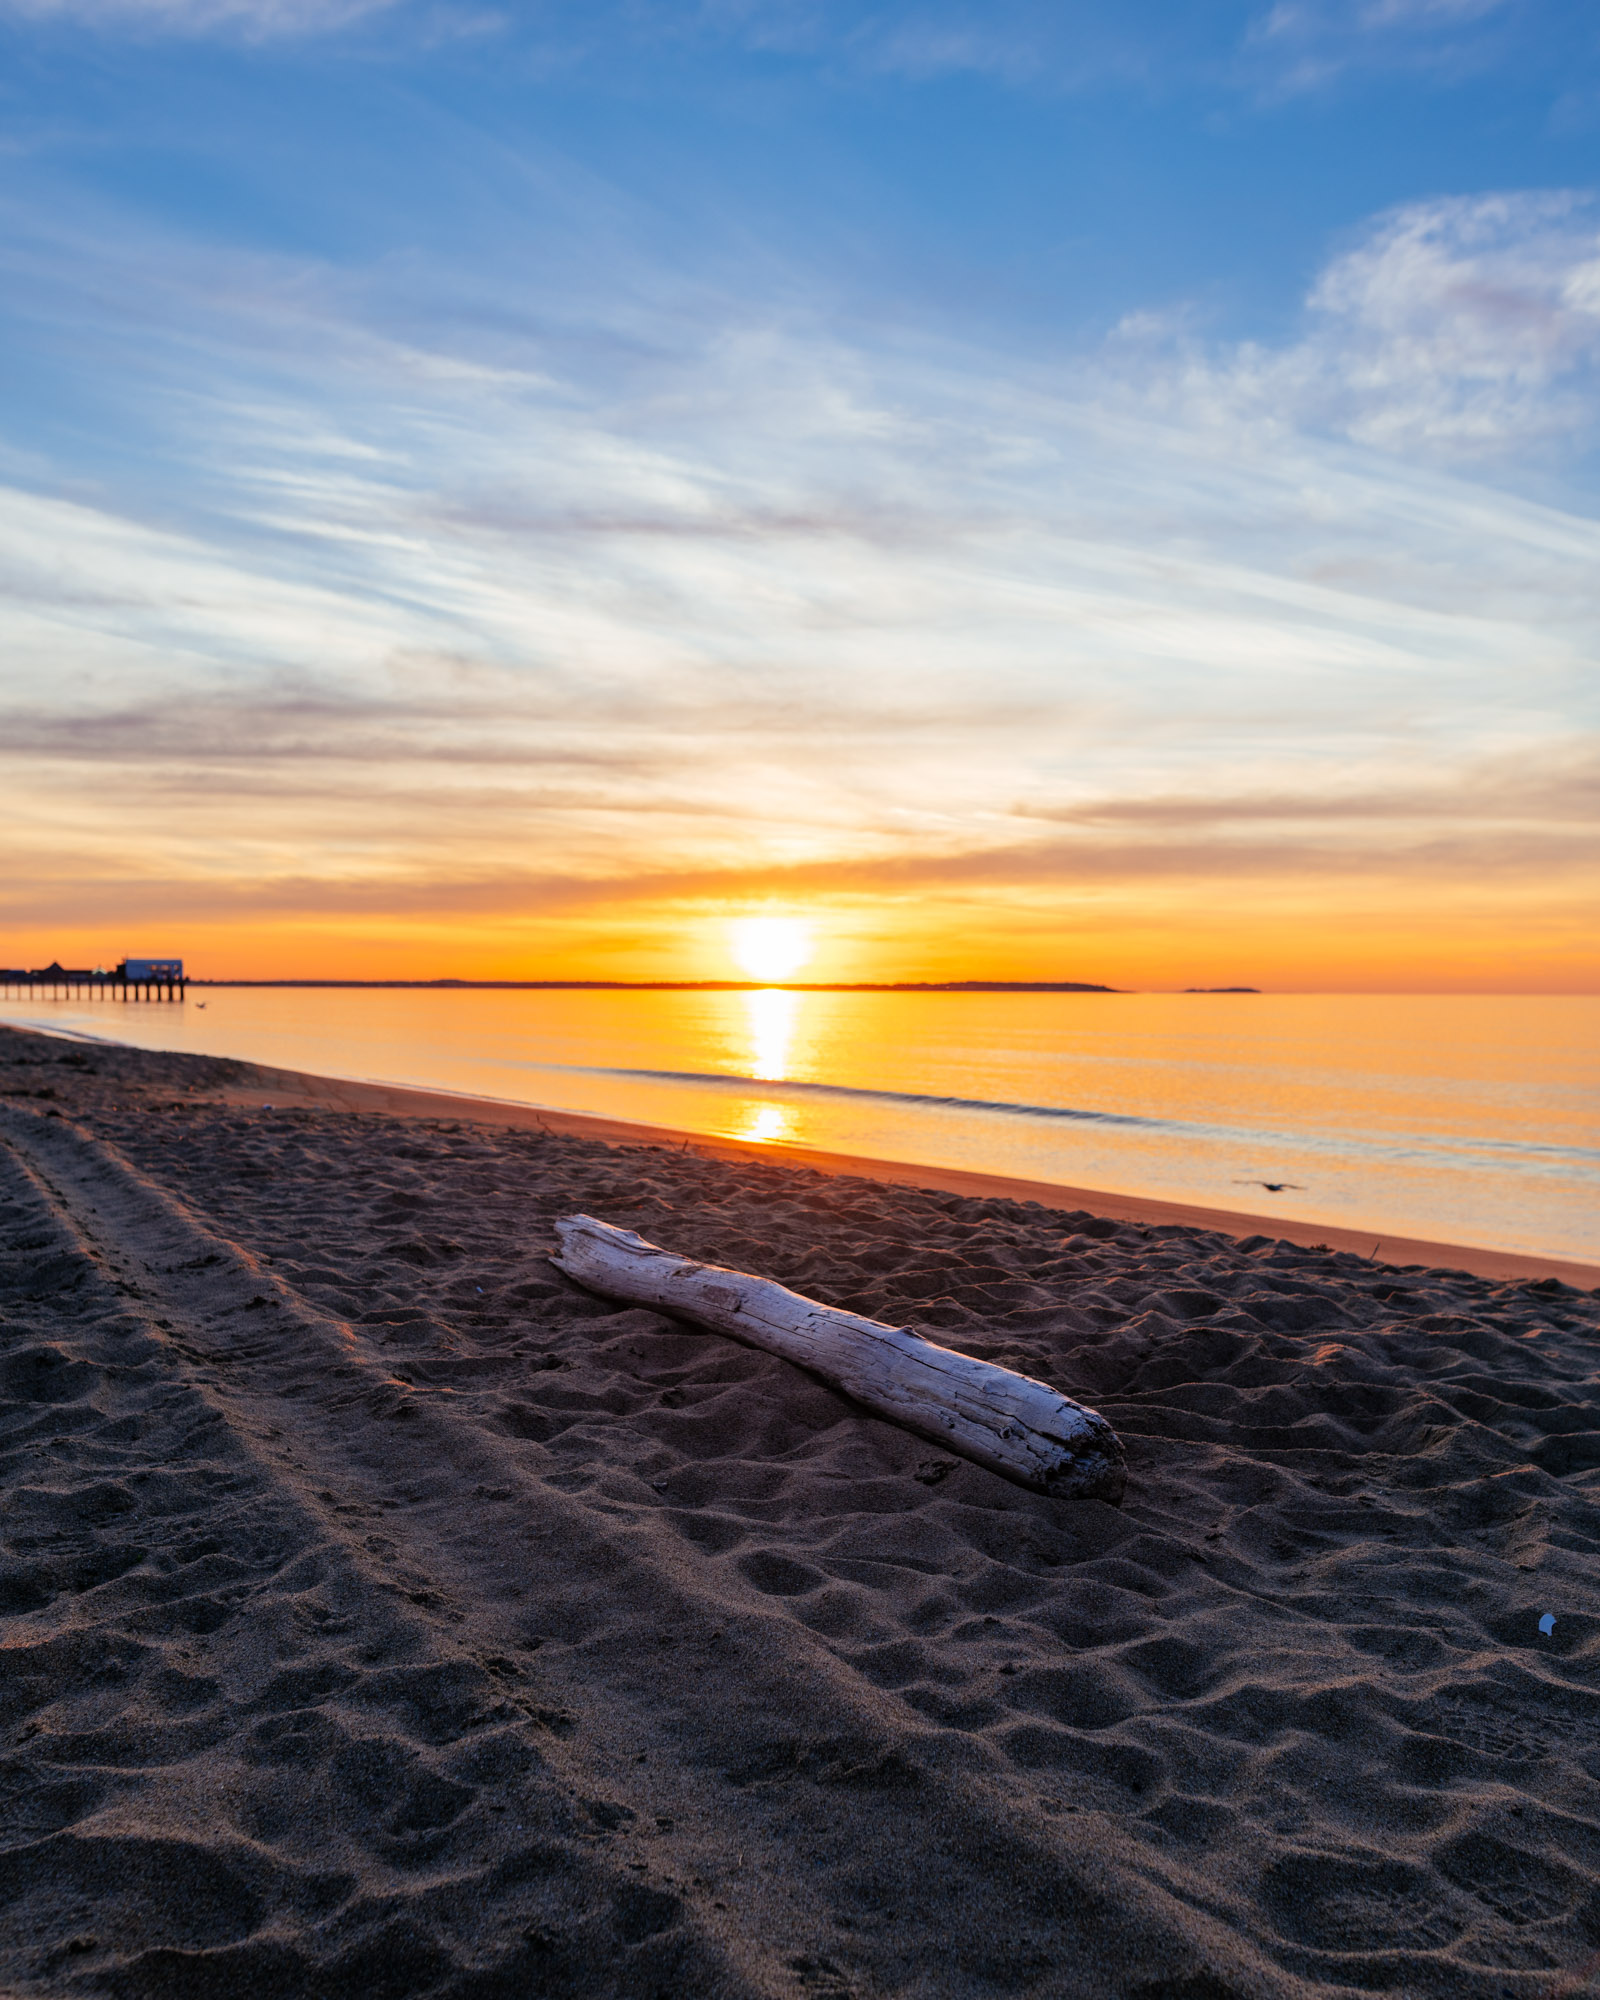 Sunrise - Old Orchard Beach - Maine - Best Things To Do In Maine - Jeff On The Road - All photos are under Copyright  © 2019 Jeff Frenette Photography / dezjeff. To use the photos, please contact me at dezjeff@me.com.